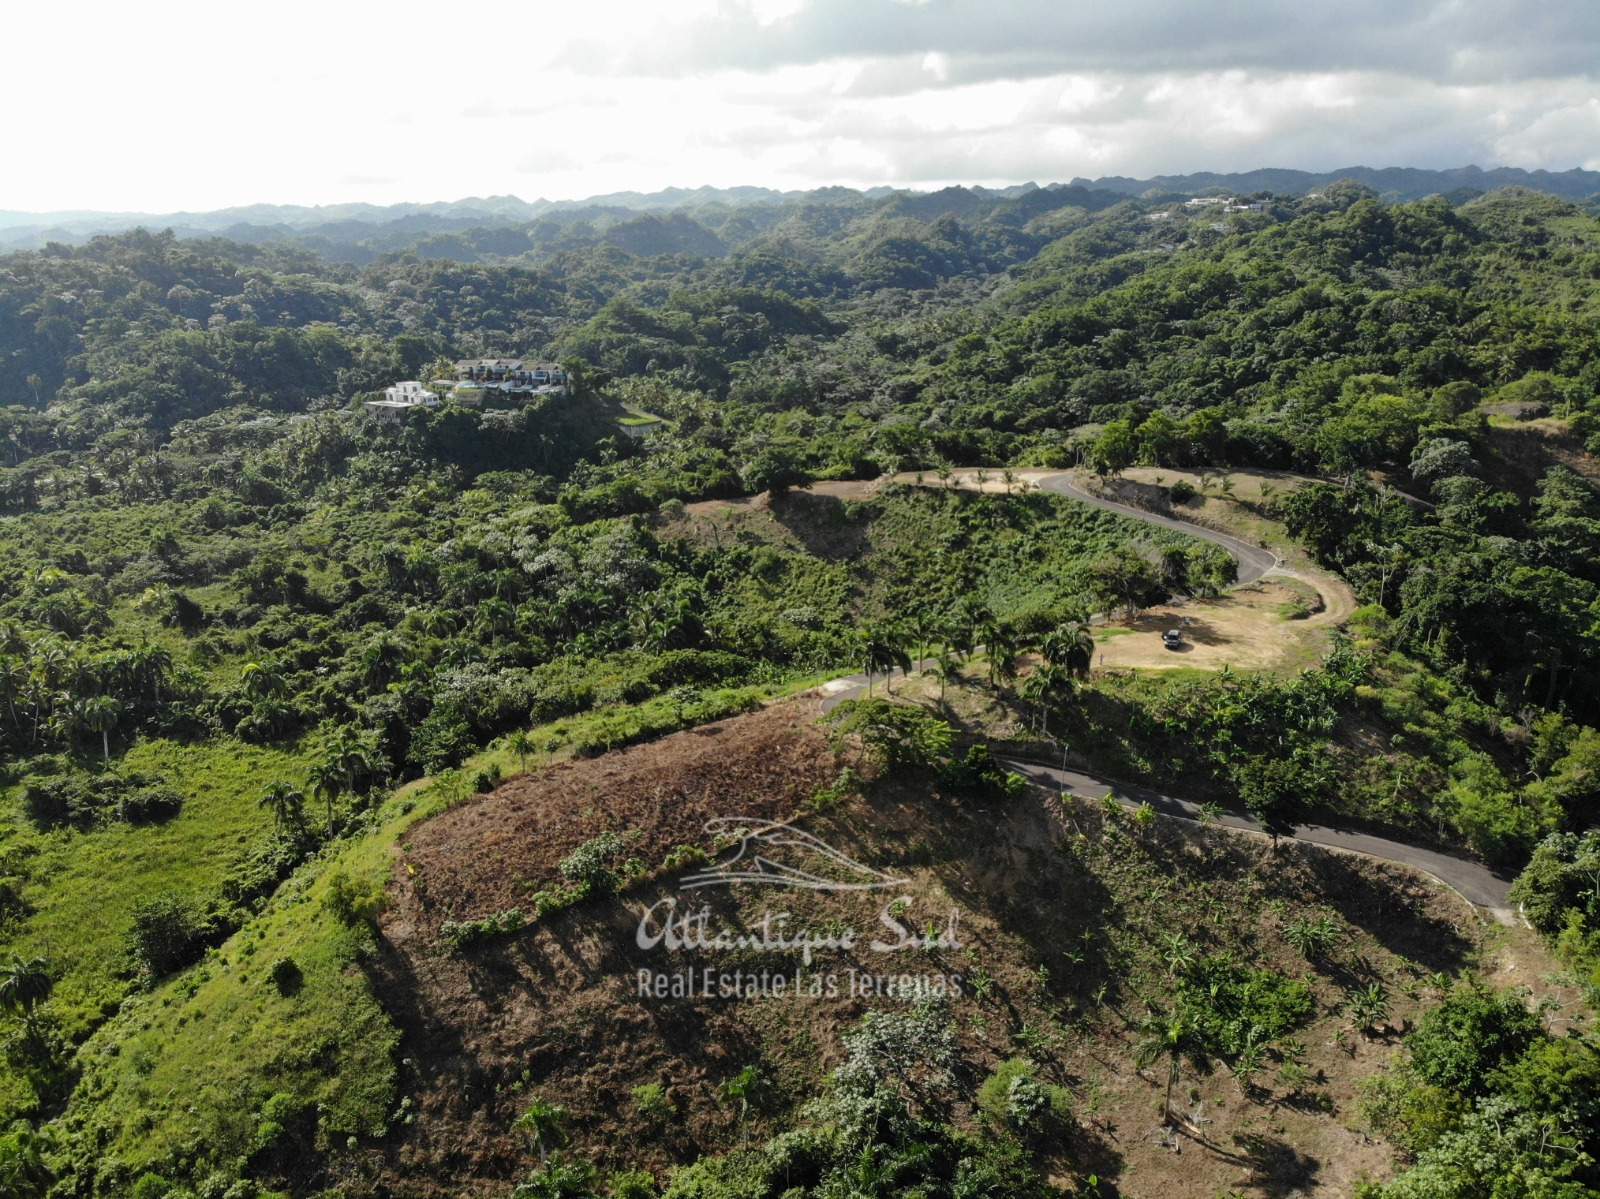 Land Lots for sale las terrenas samana18.jpeg